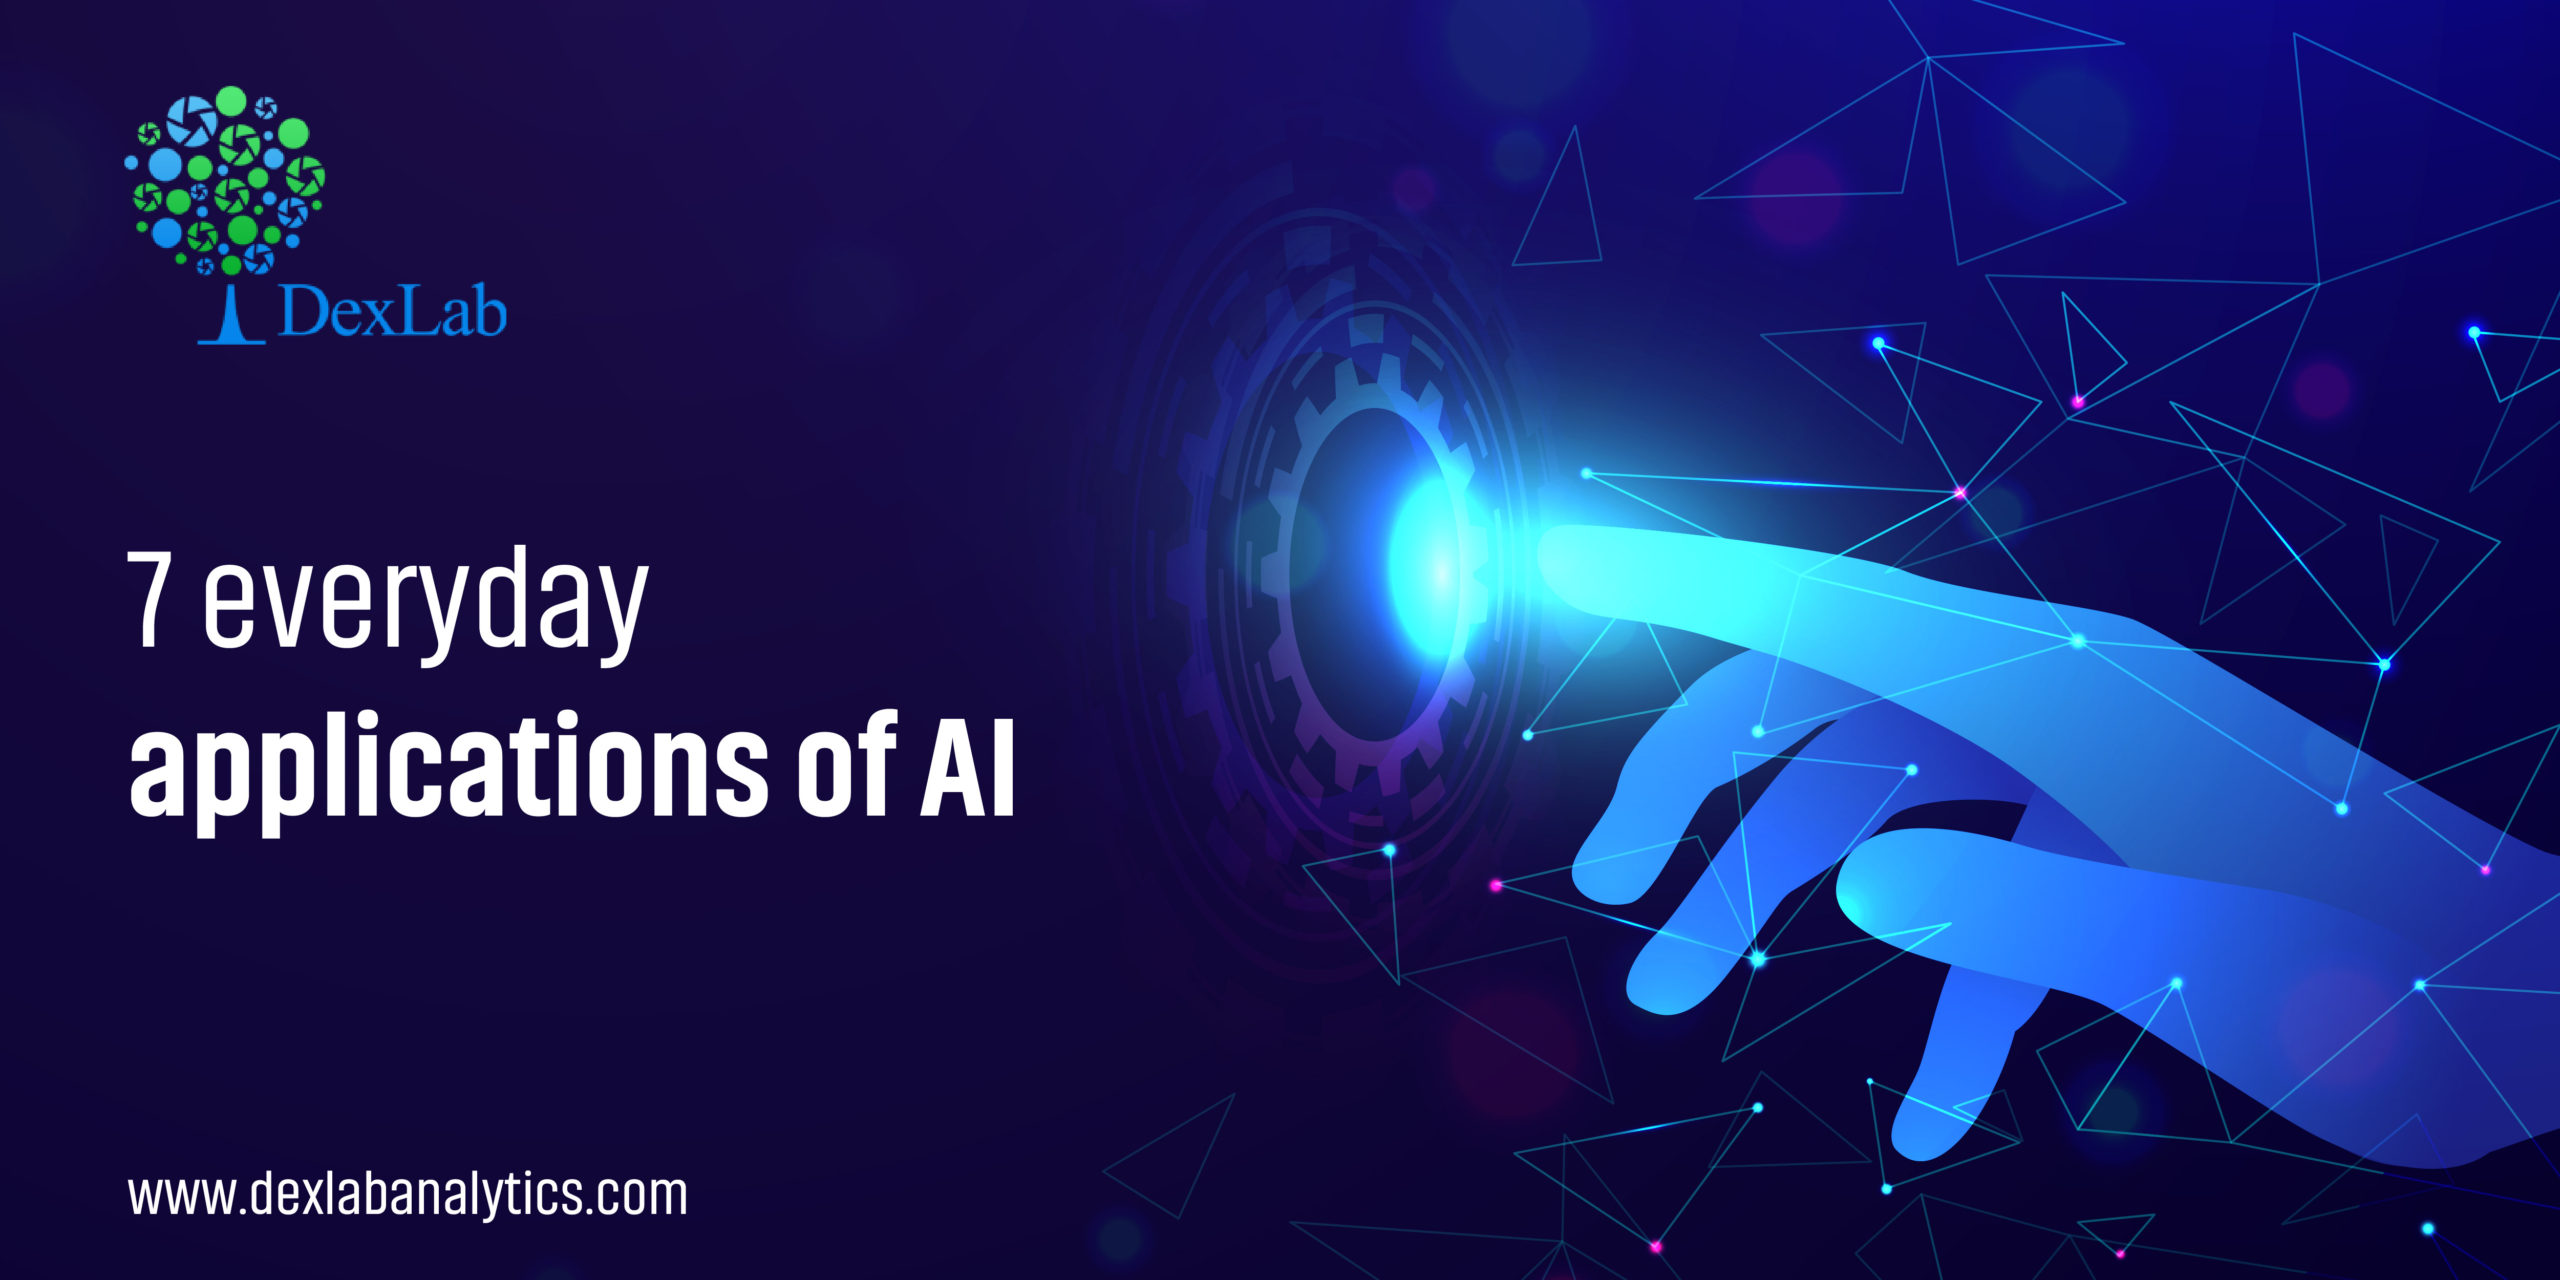 7 Everyday Applications of AI